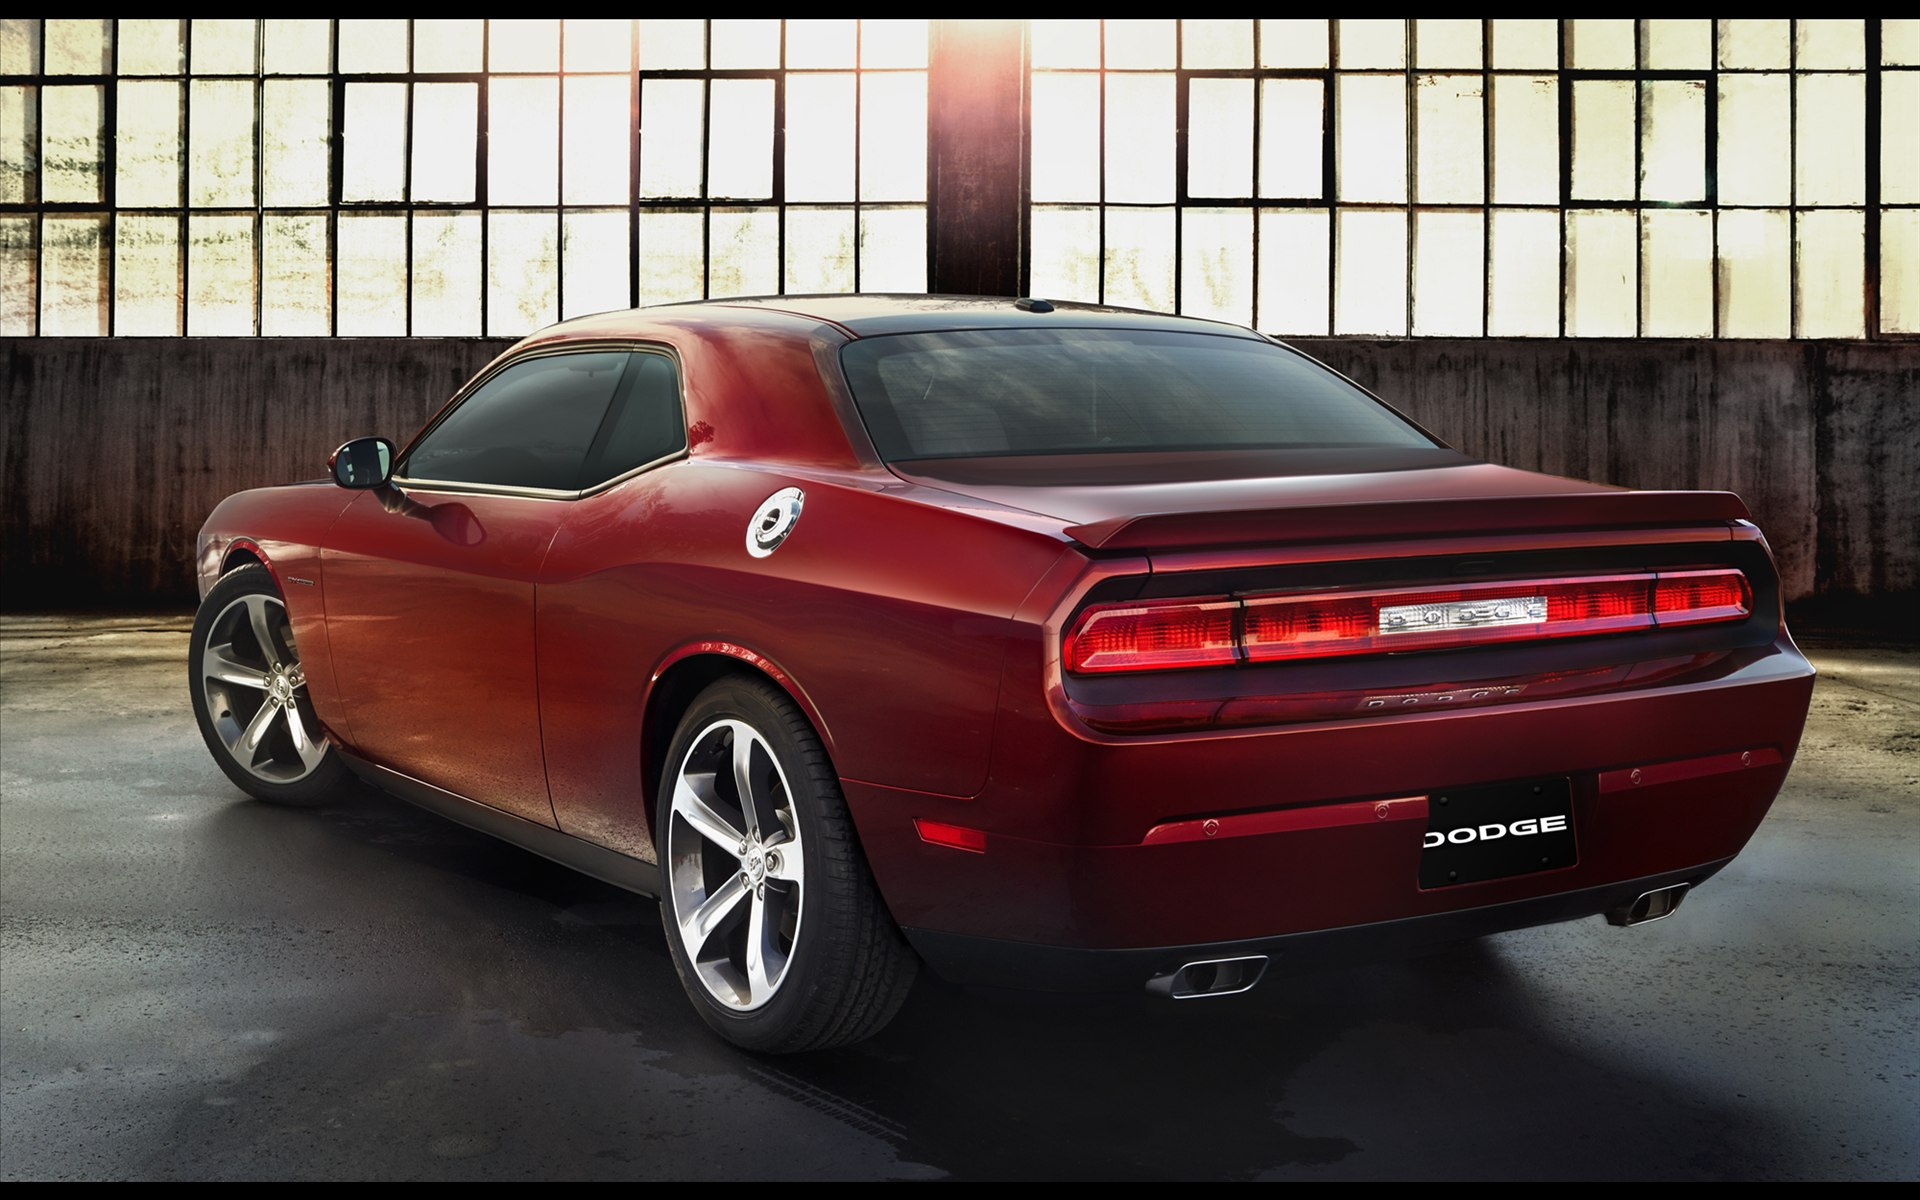 2014 Dodge Challenger 100th Anniversary Edition Car The New Challenger 1920x1200